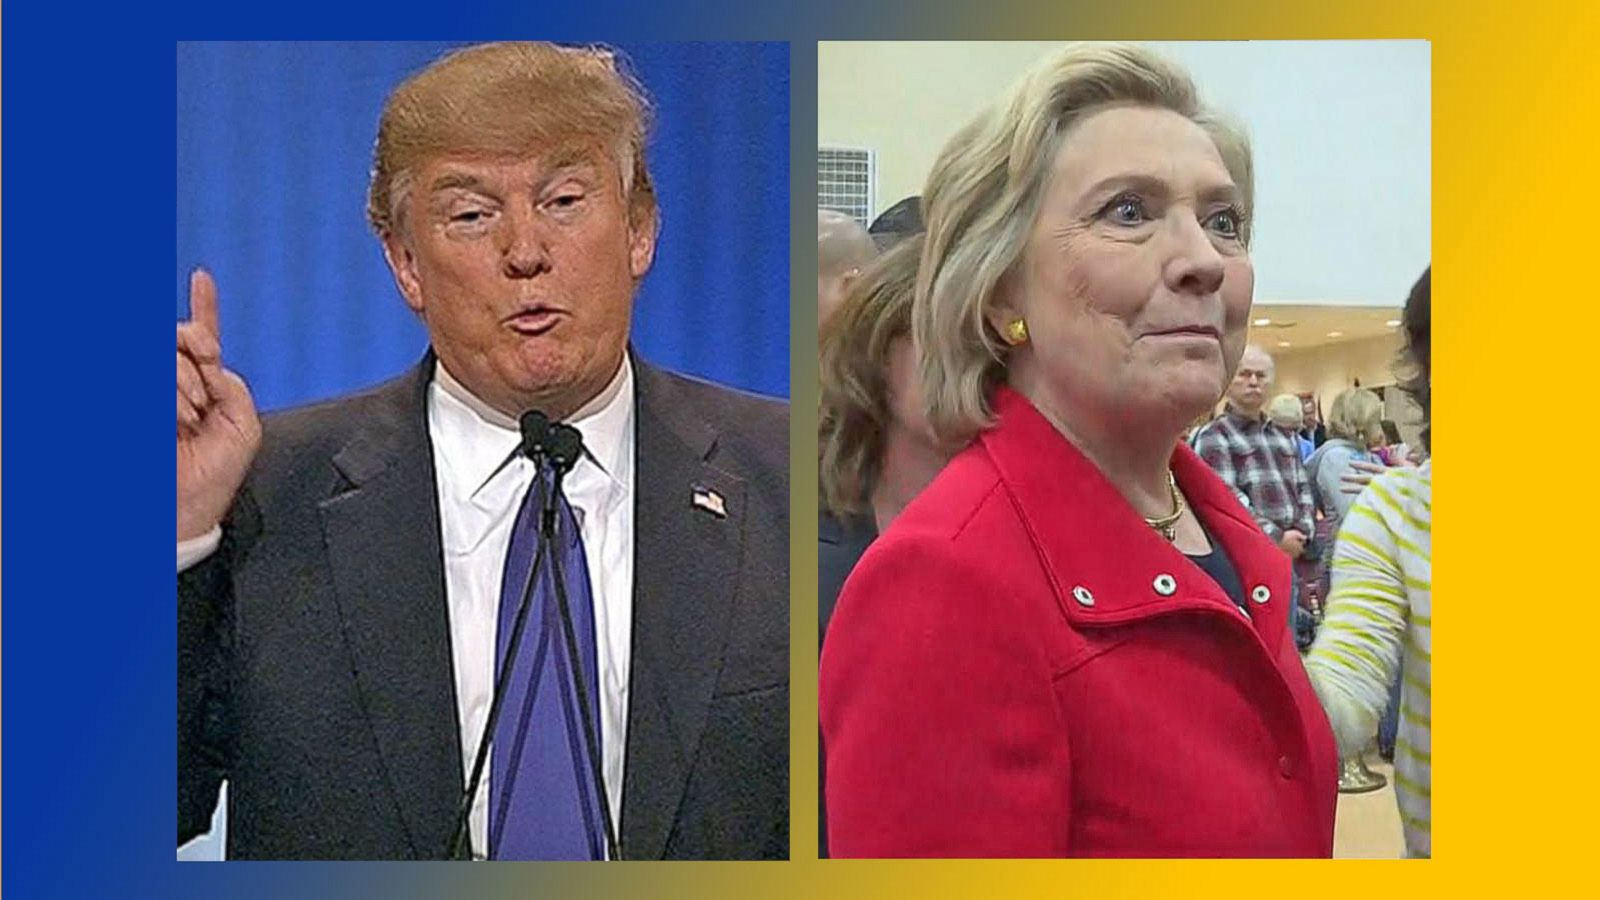 VIDEO: Hillary Clinton, Donald Trump Prepare for First Debate